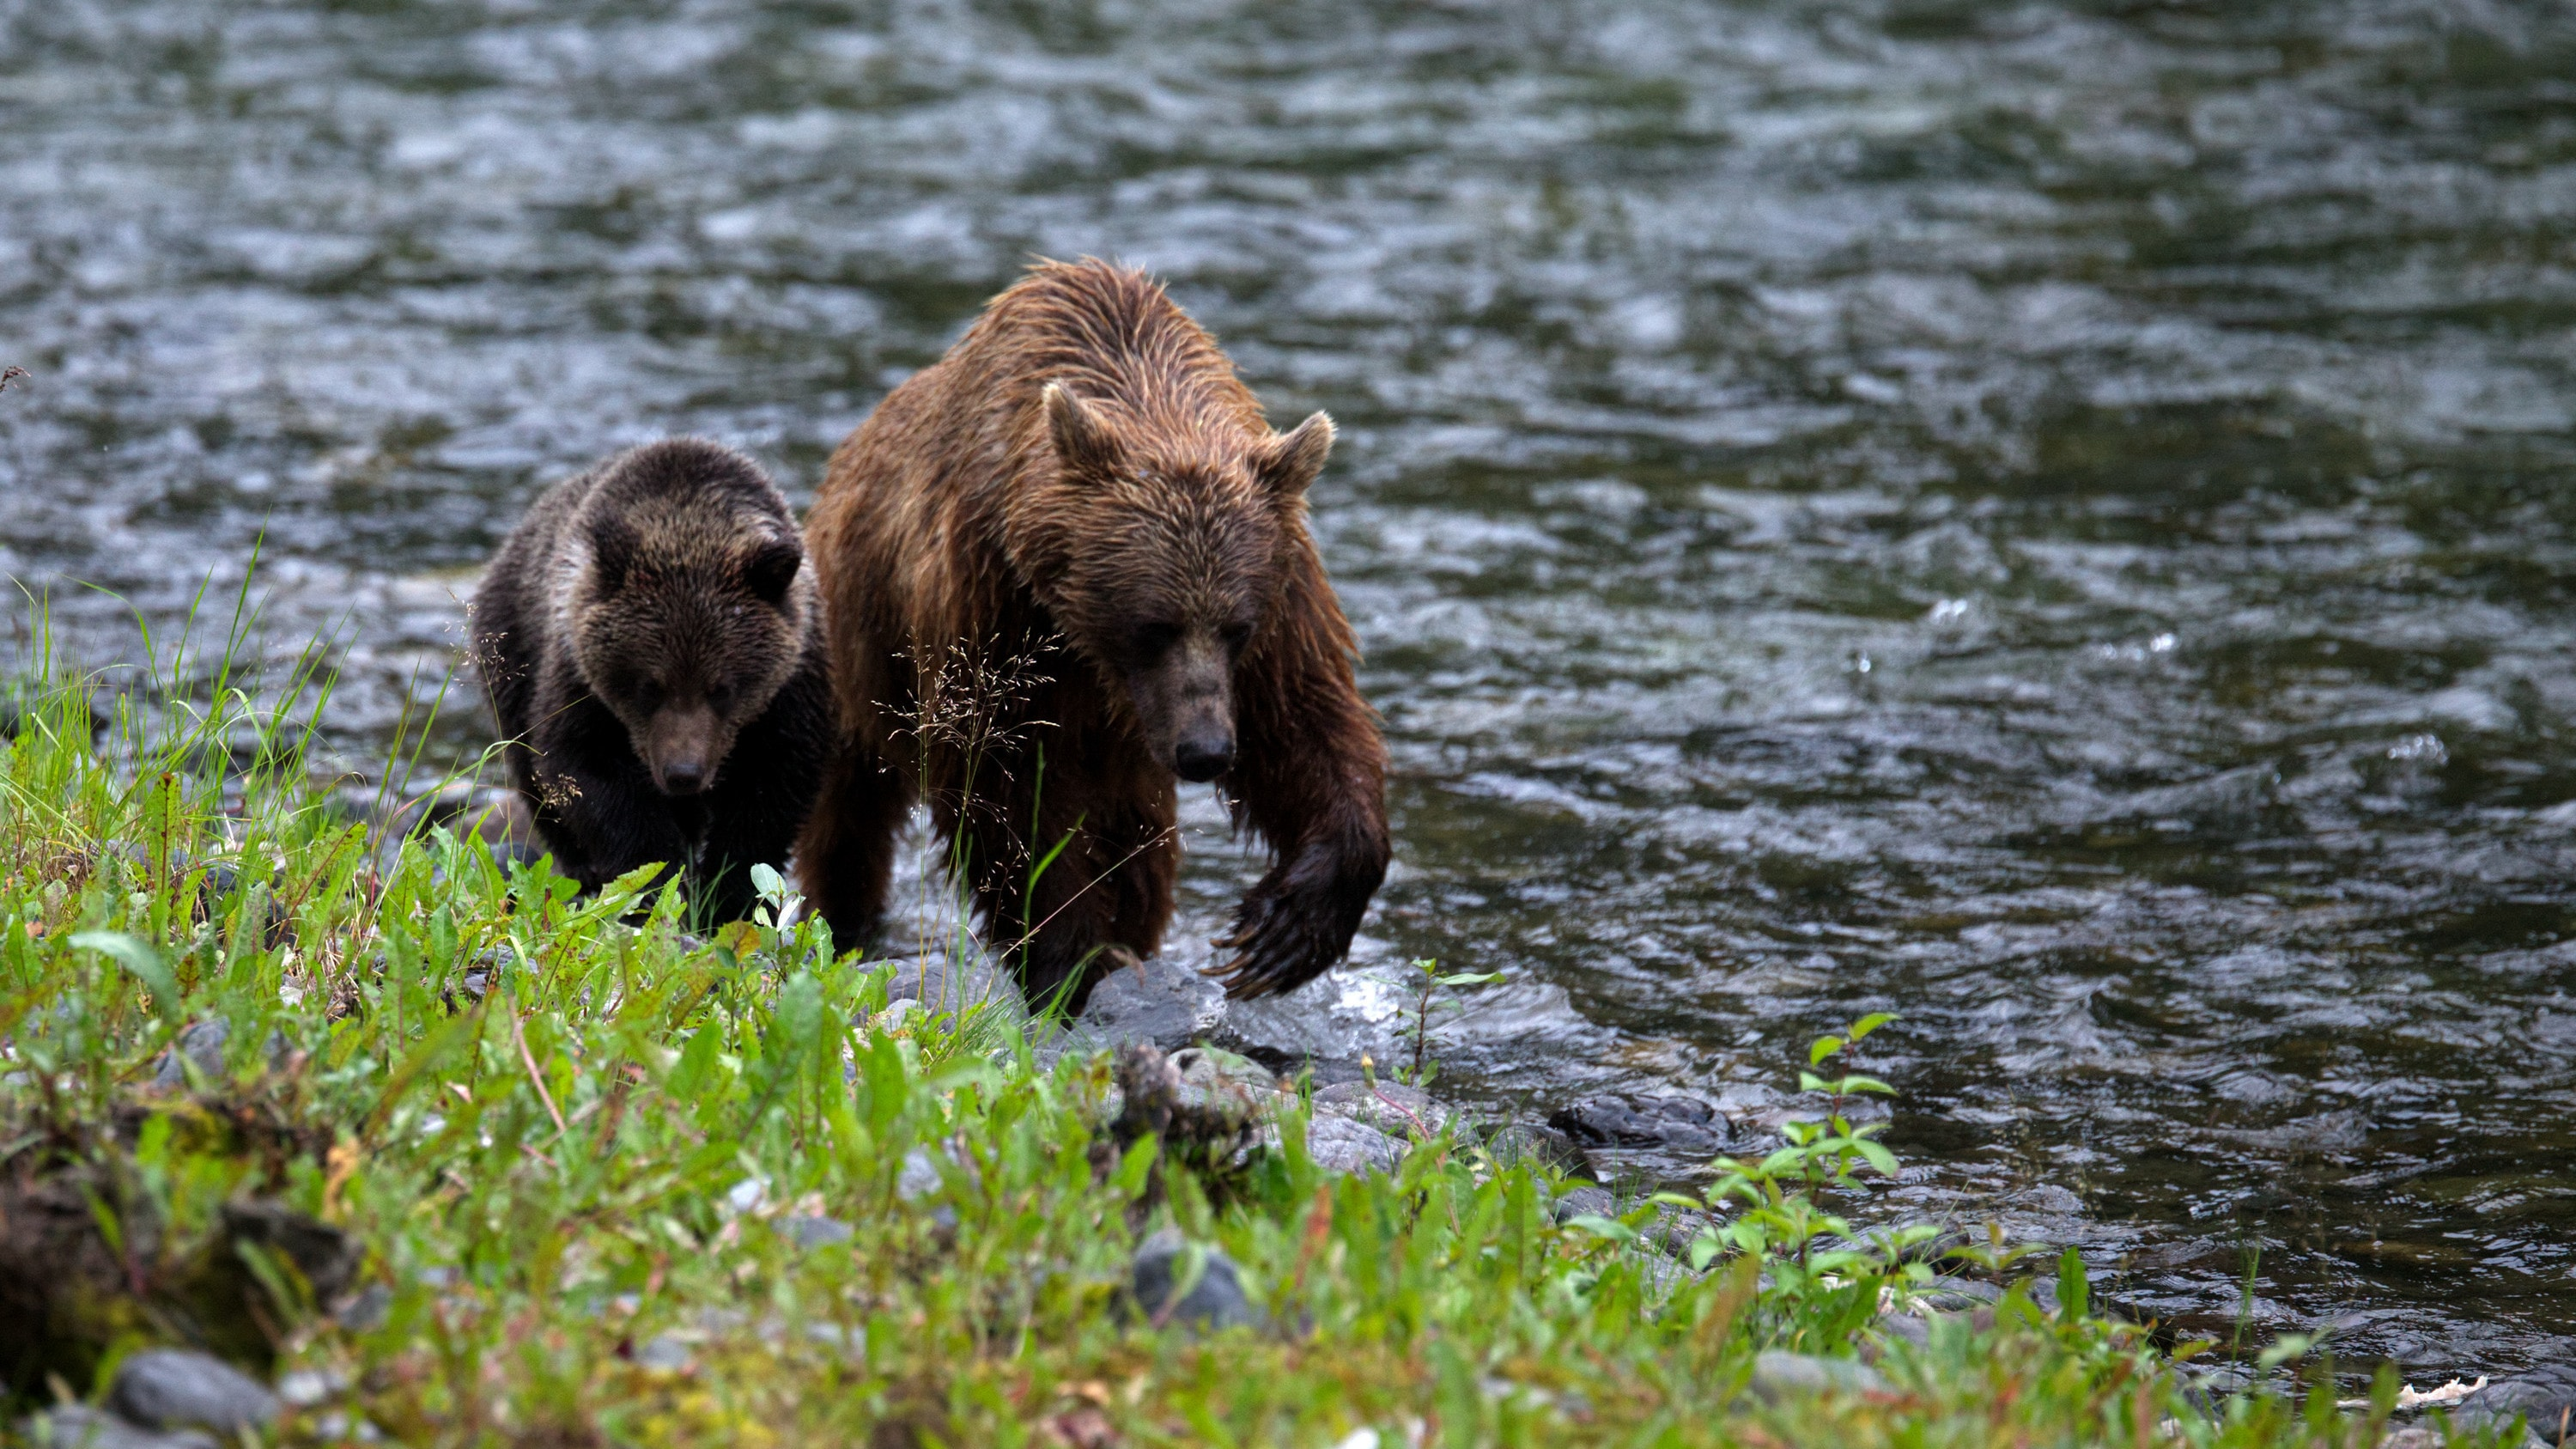 Two grizzly bears walk along the bank of the river. (National Geographic for Disney+/Samuel Ellis)